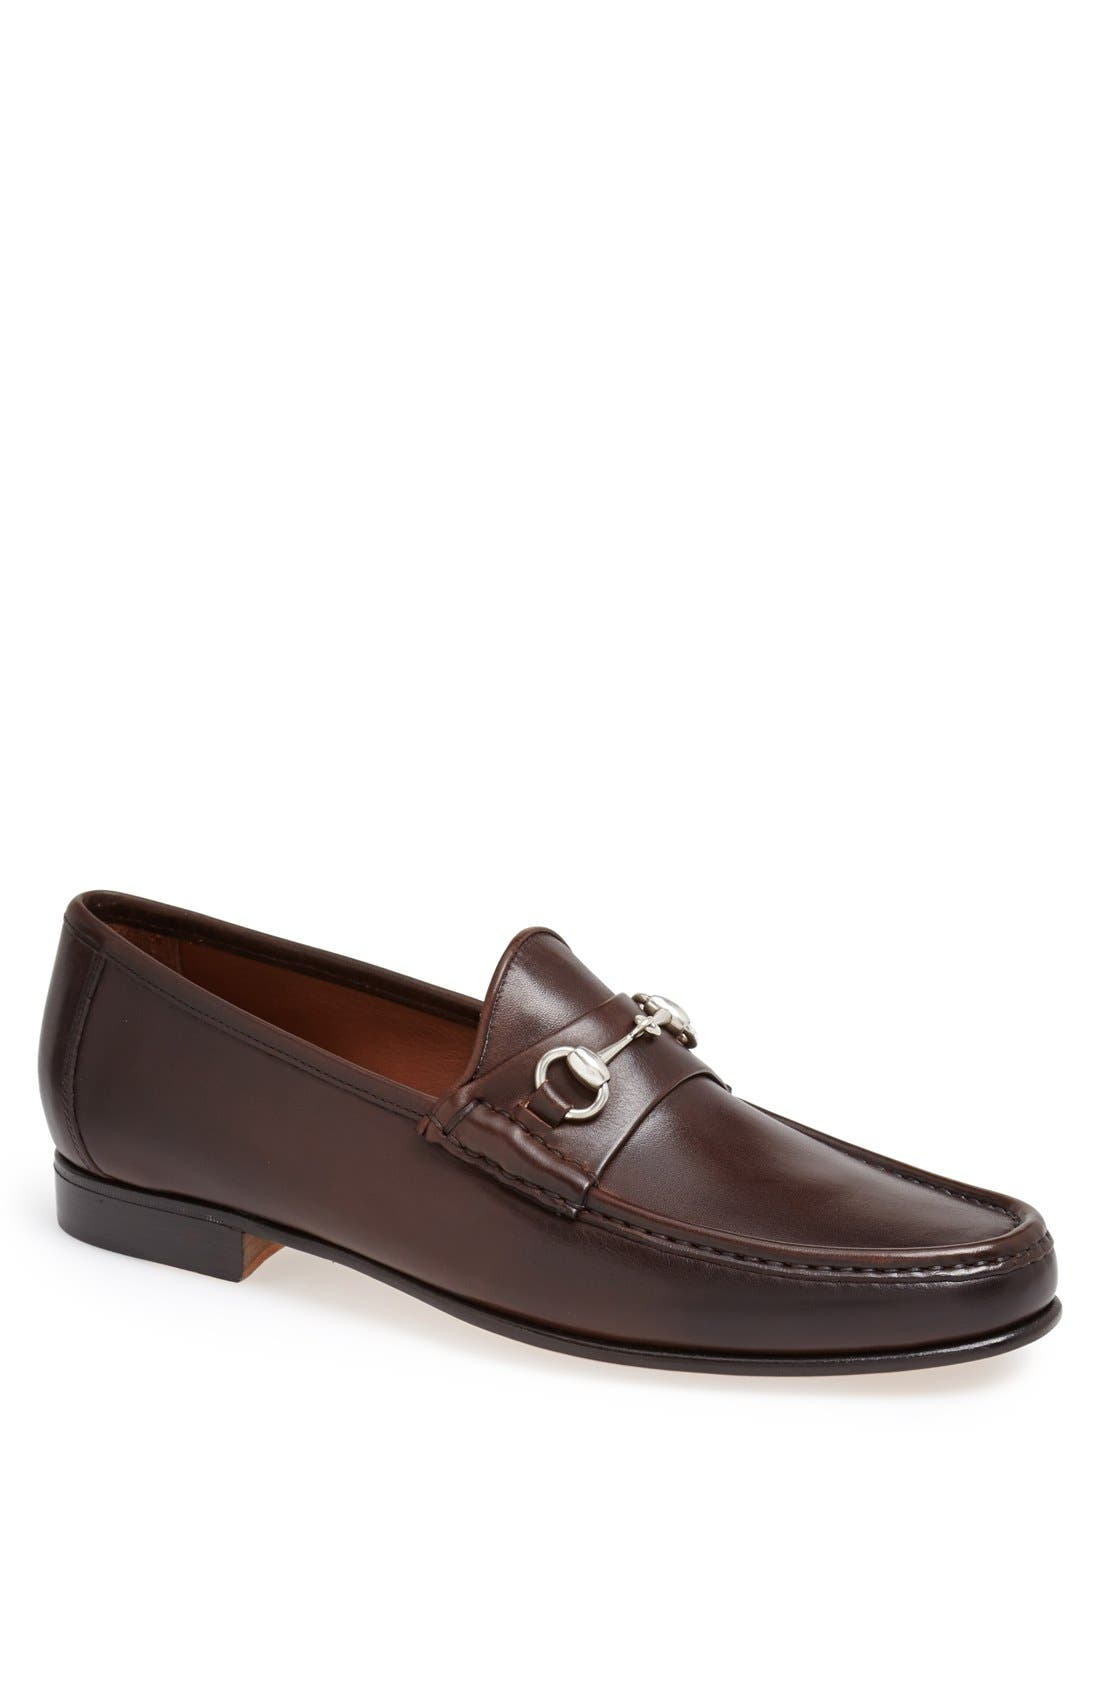 Verona II Bit Loafer,                             Main thumbnail 1, color,                             Brown/ Brown